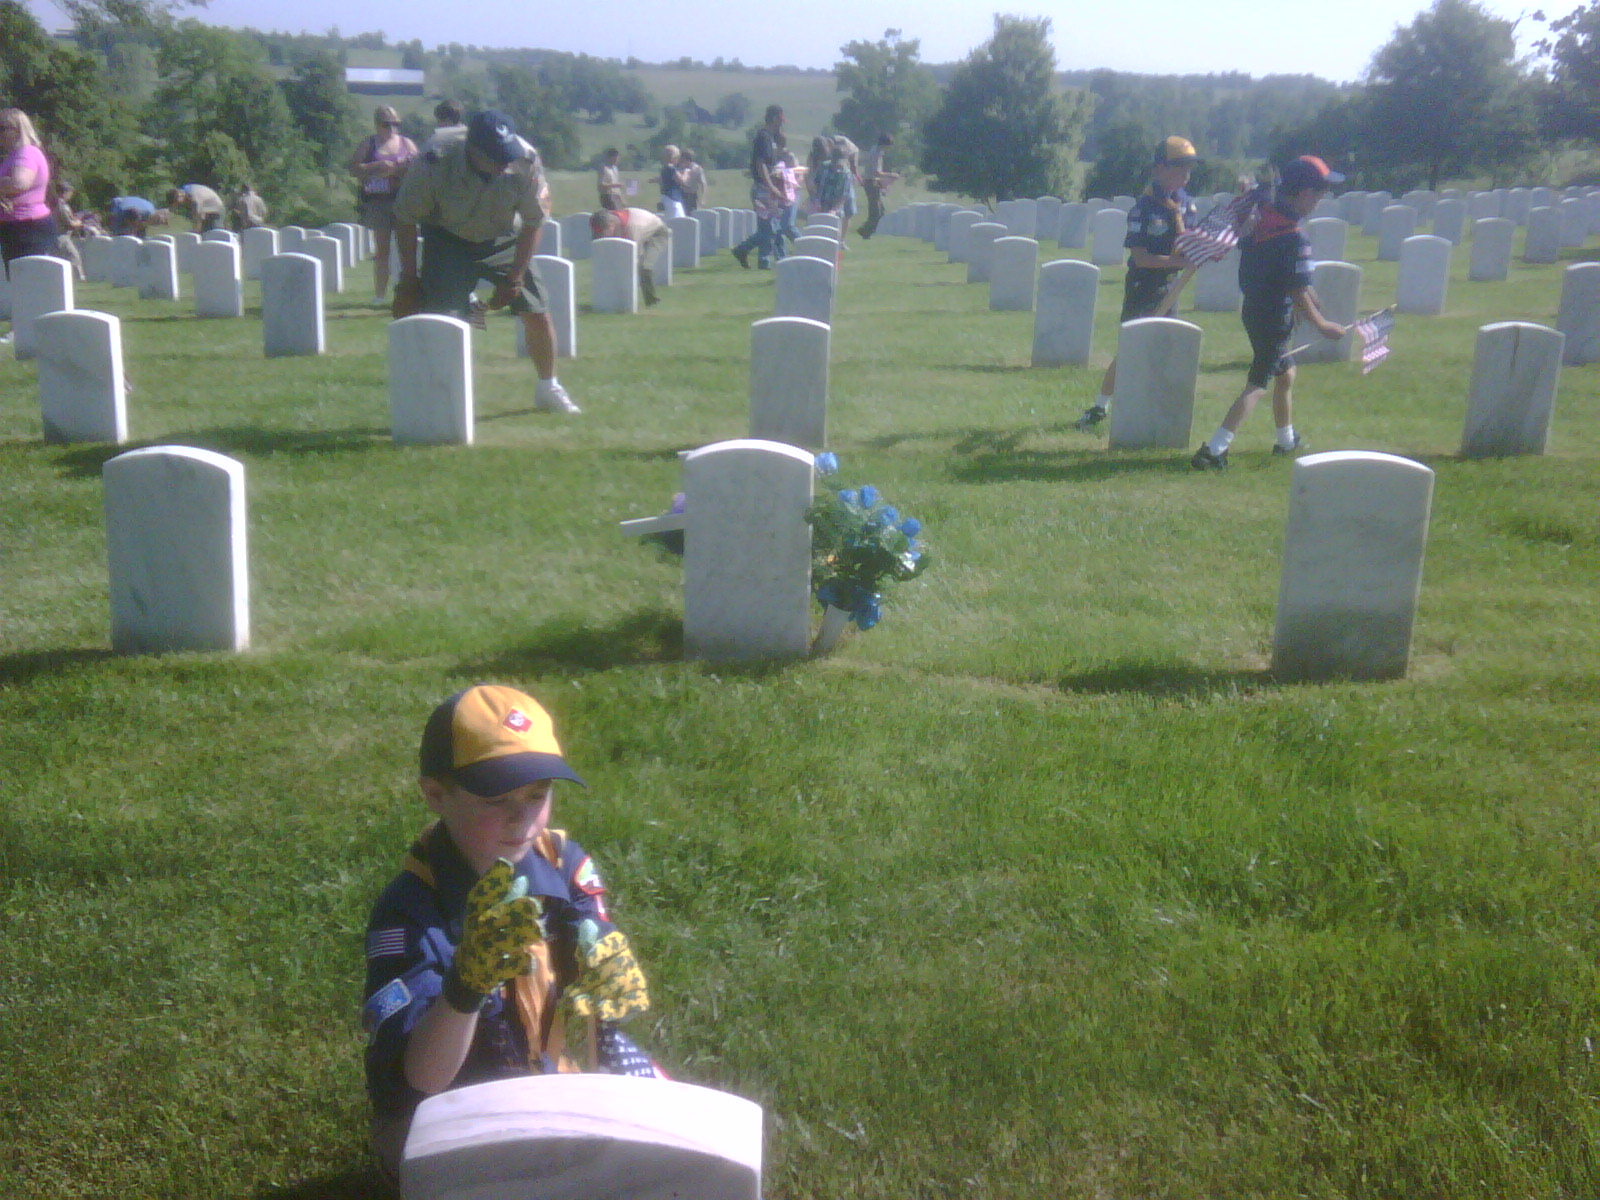 Colby placing a flag at one of the grave sites at Camp Nelson